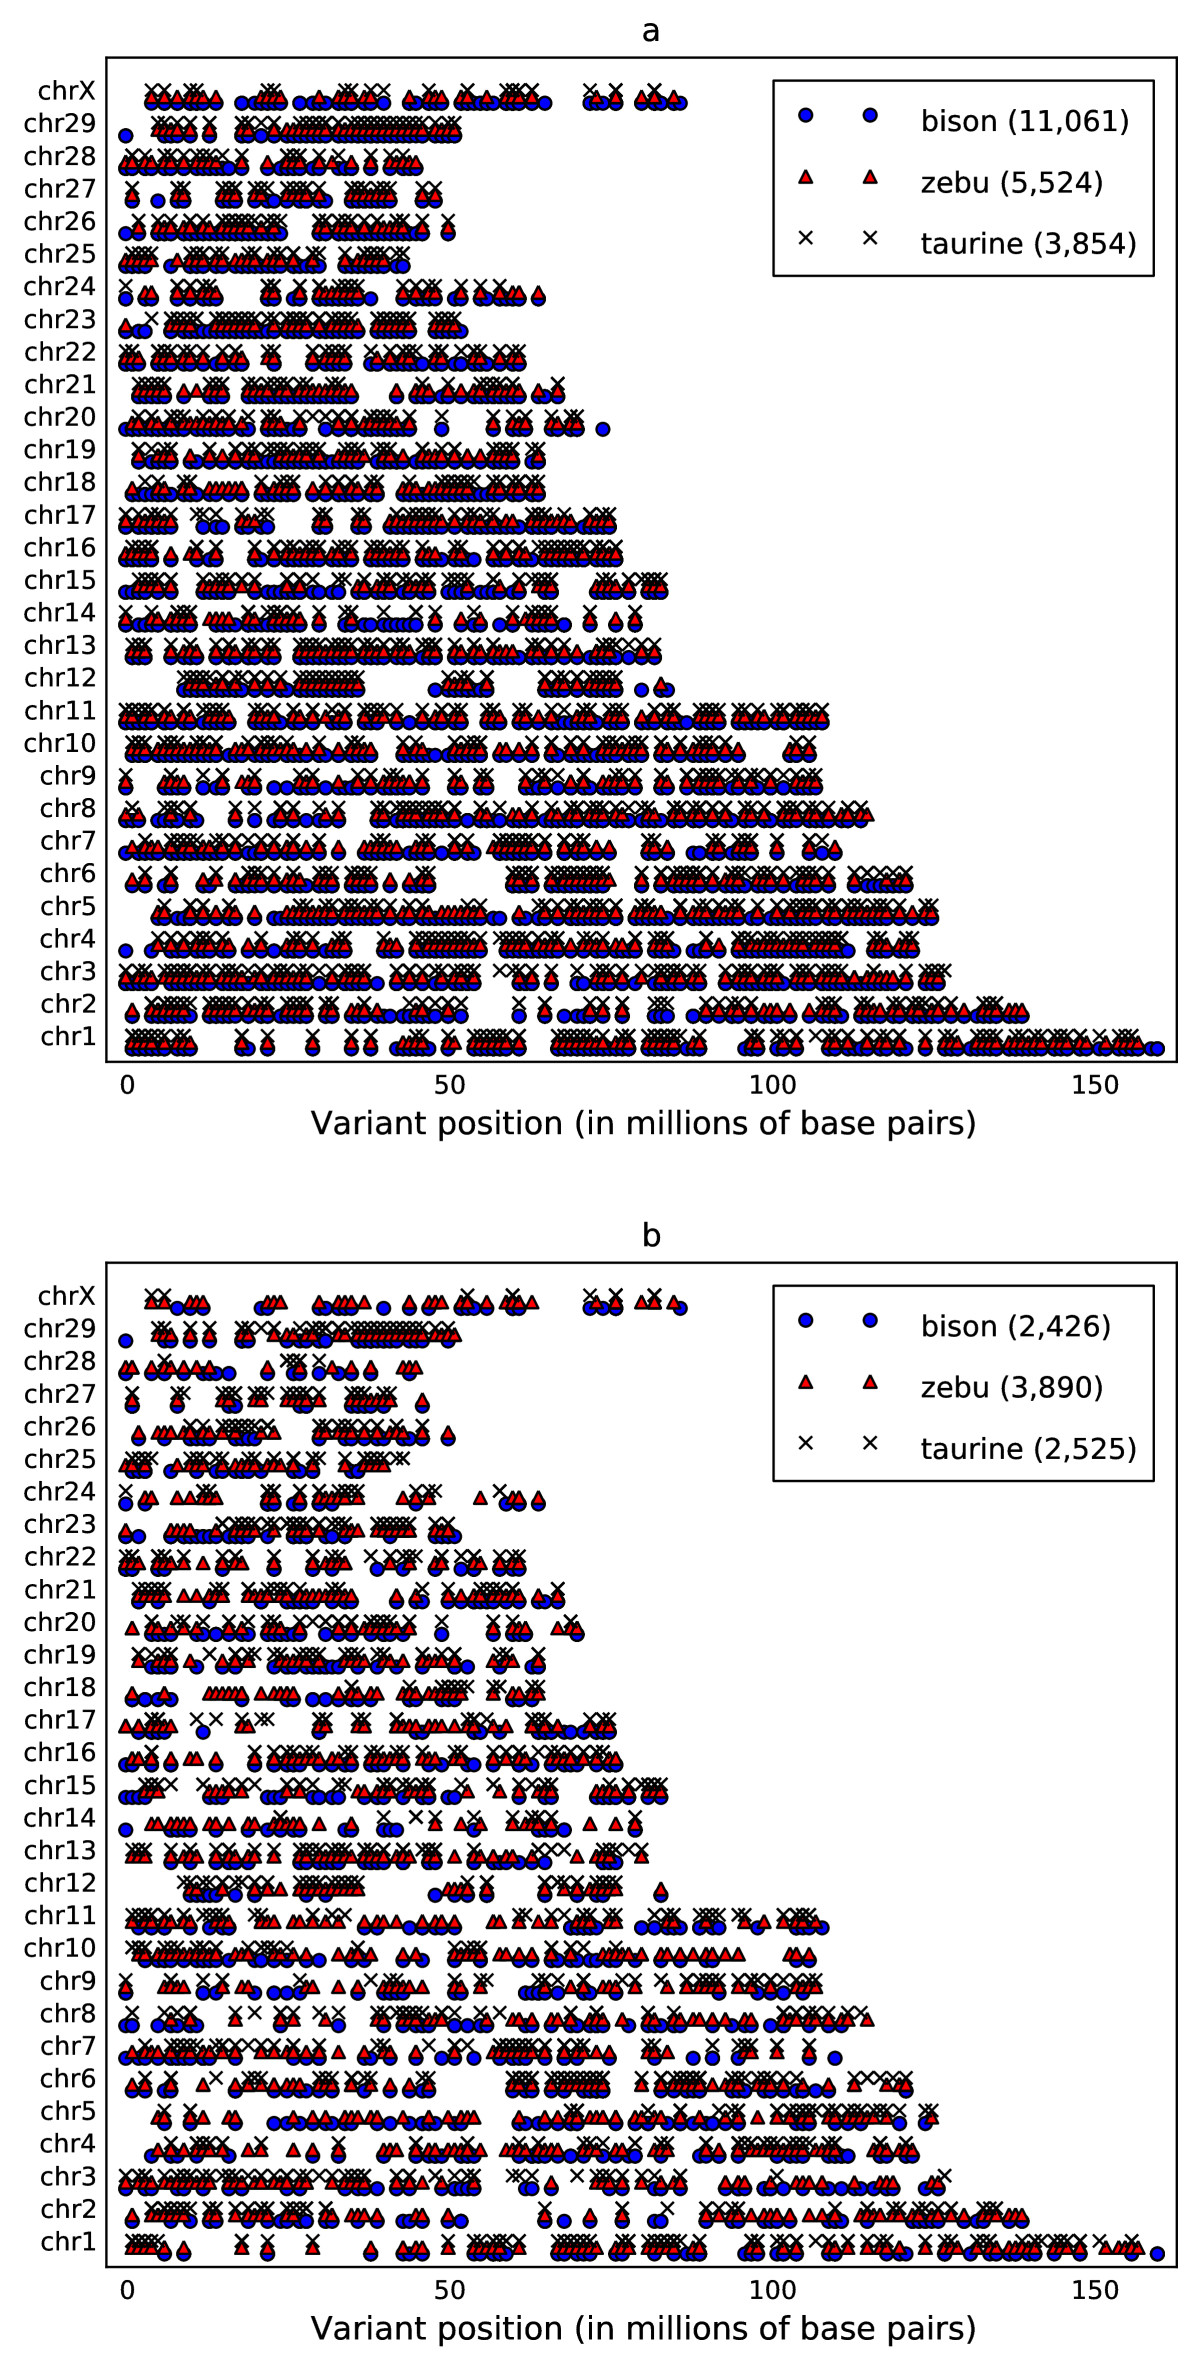 http://static-content.springer.com/image/art%3A10.1186%2F1471-2164-12-347/MediaObjects/12864_2010_3491_Fig2_HTML.jpg